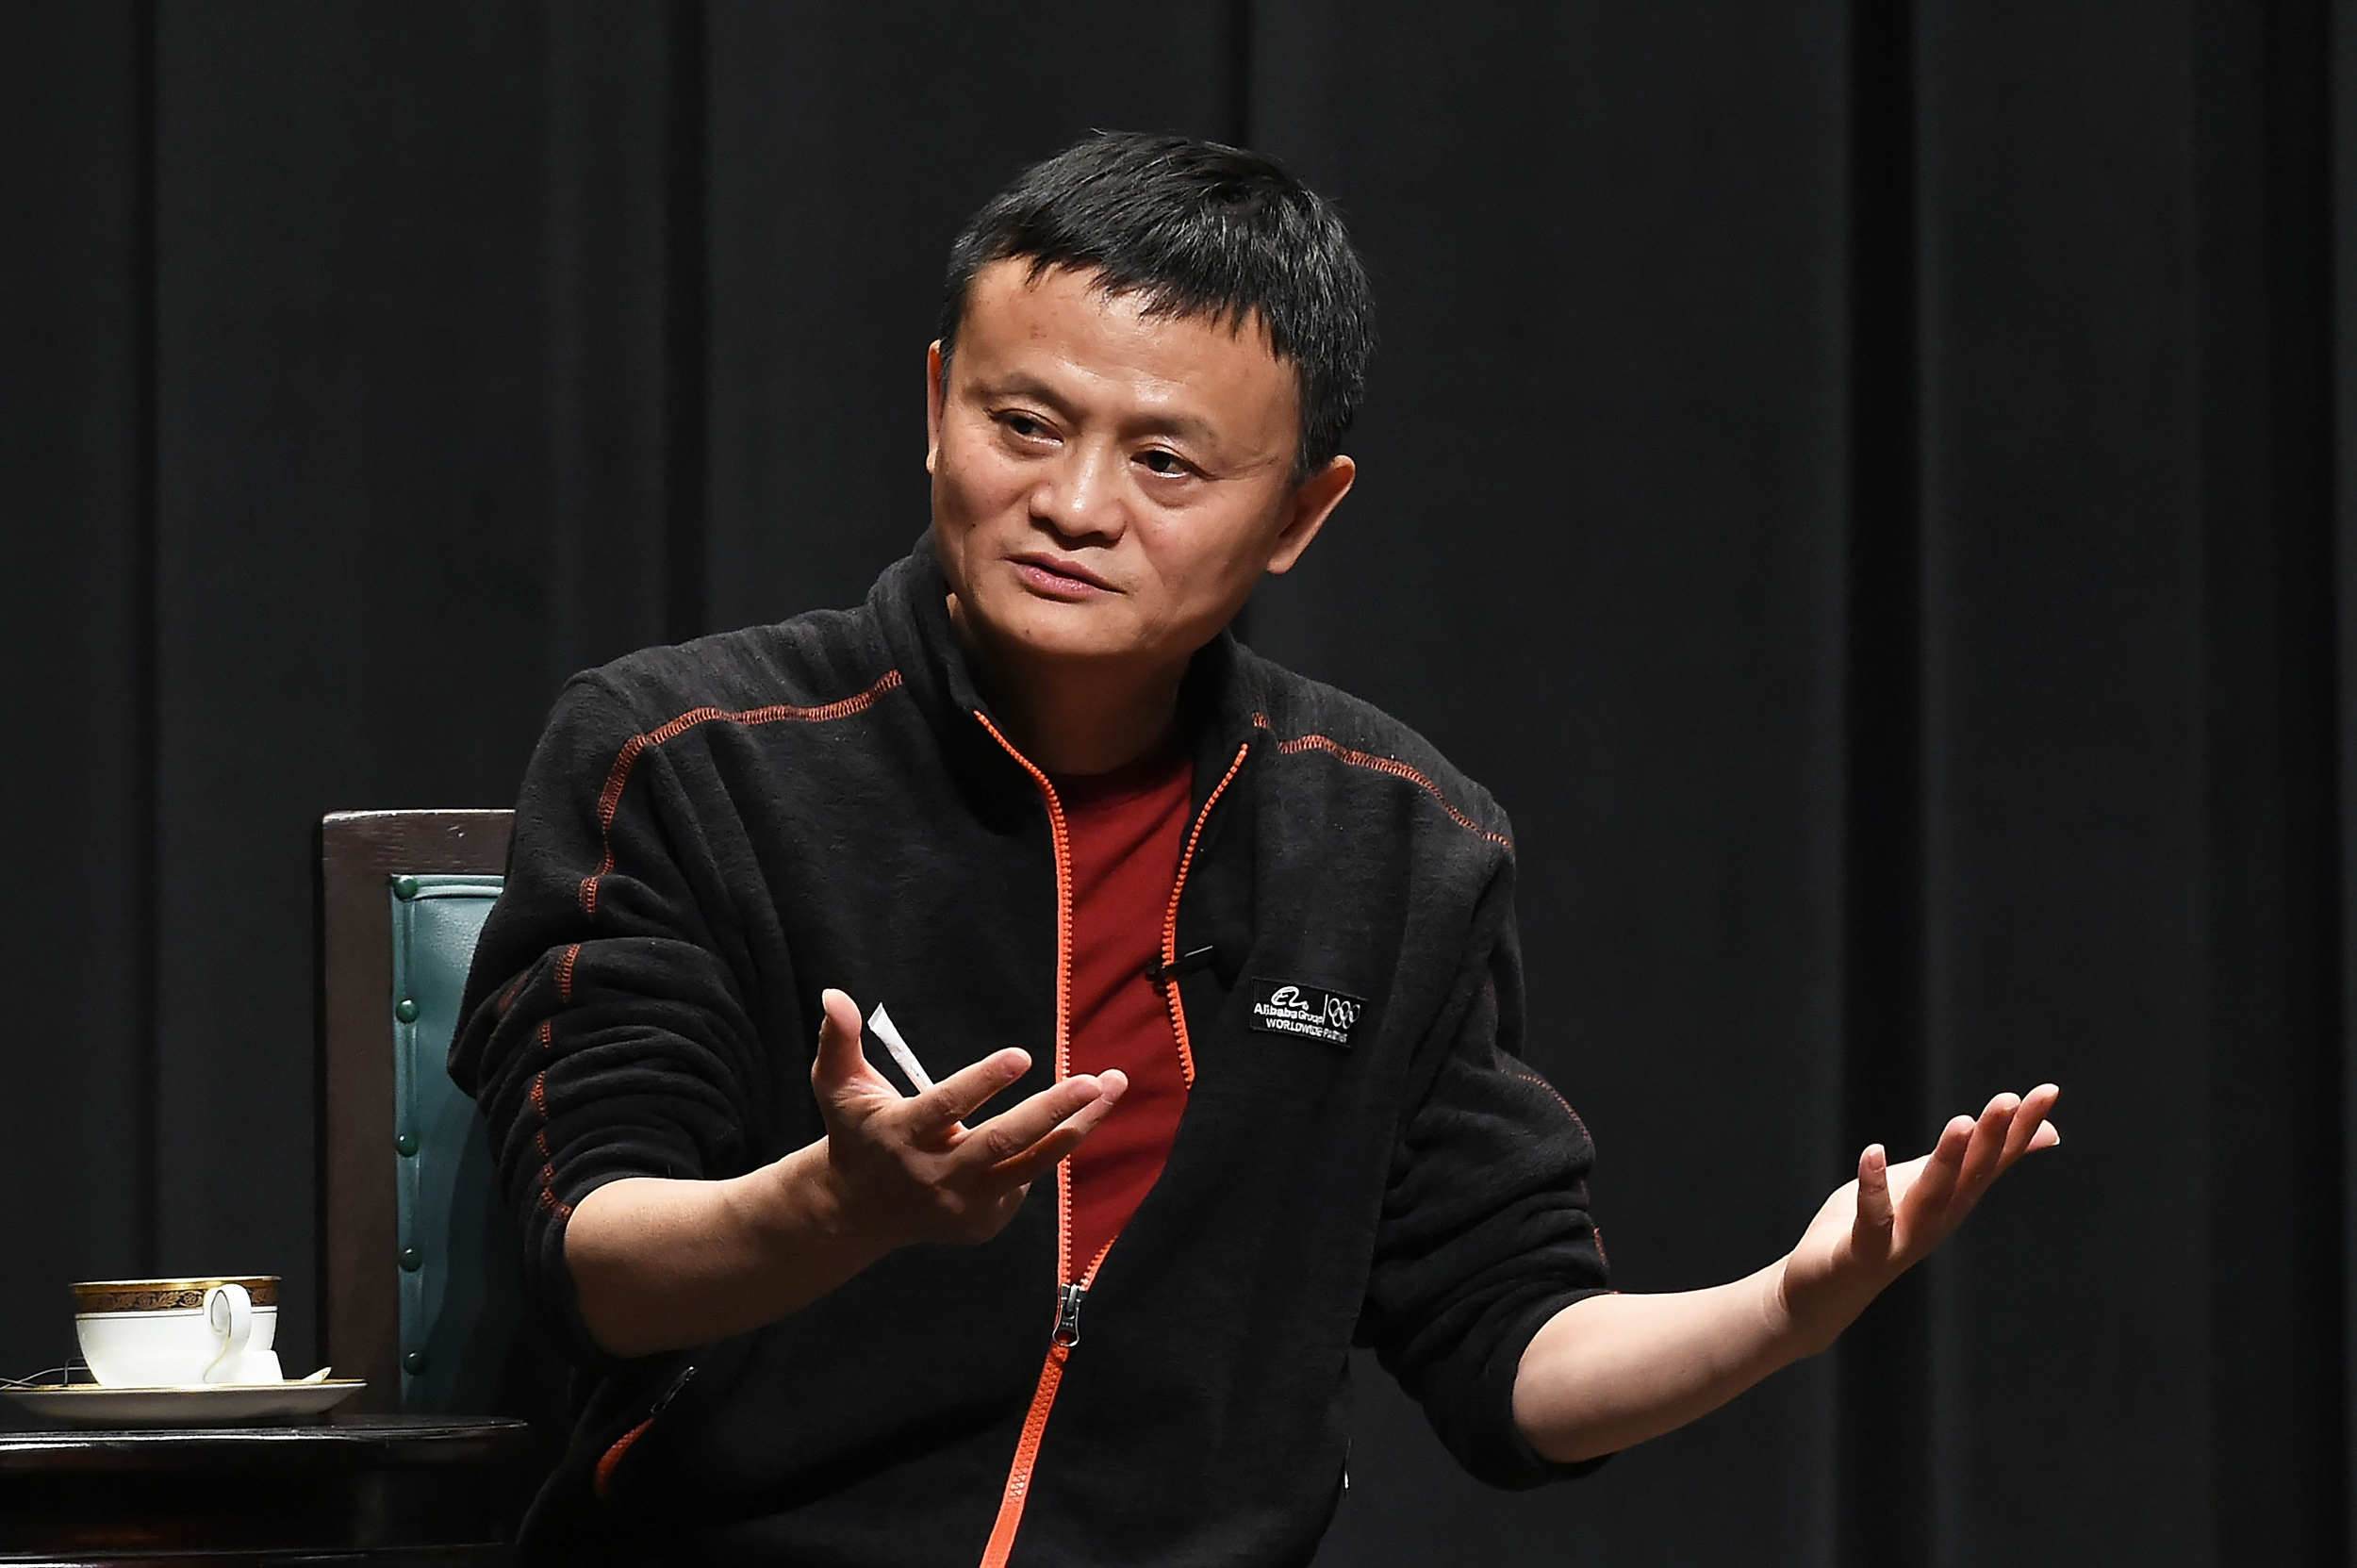 Alibaba Founder Jack Ma To Step Down As Chairman He is now officially the richest man in china with an estimated net worth of $25 billion, on the back of the recent world record $150 billion ipo filing of his company. https www nbcnews com tech tech news alibaba founder jack ma step down chairman n908061